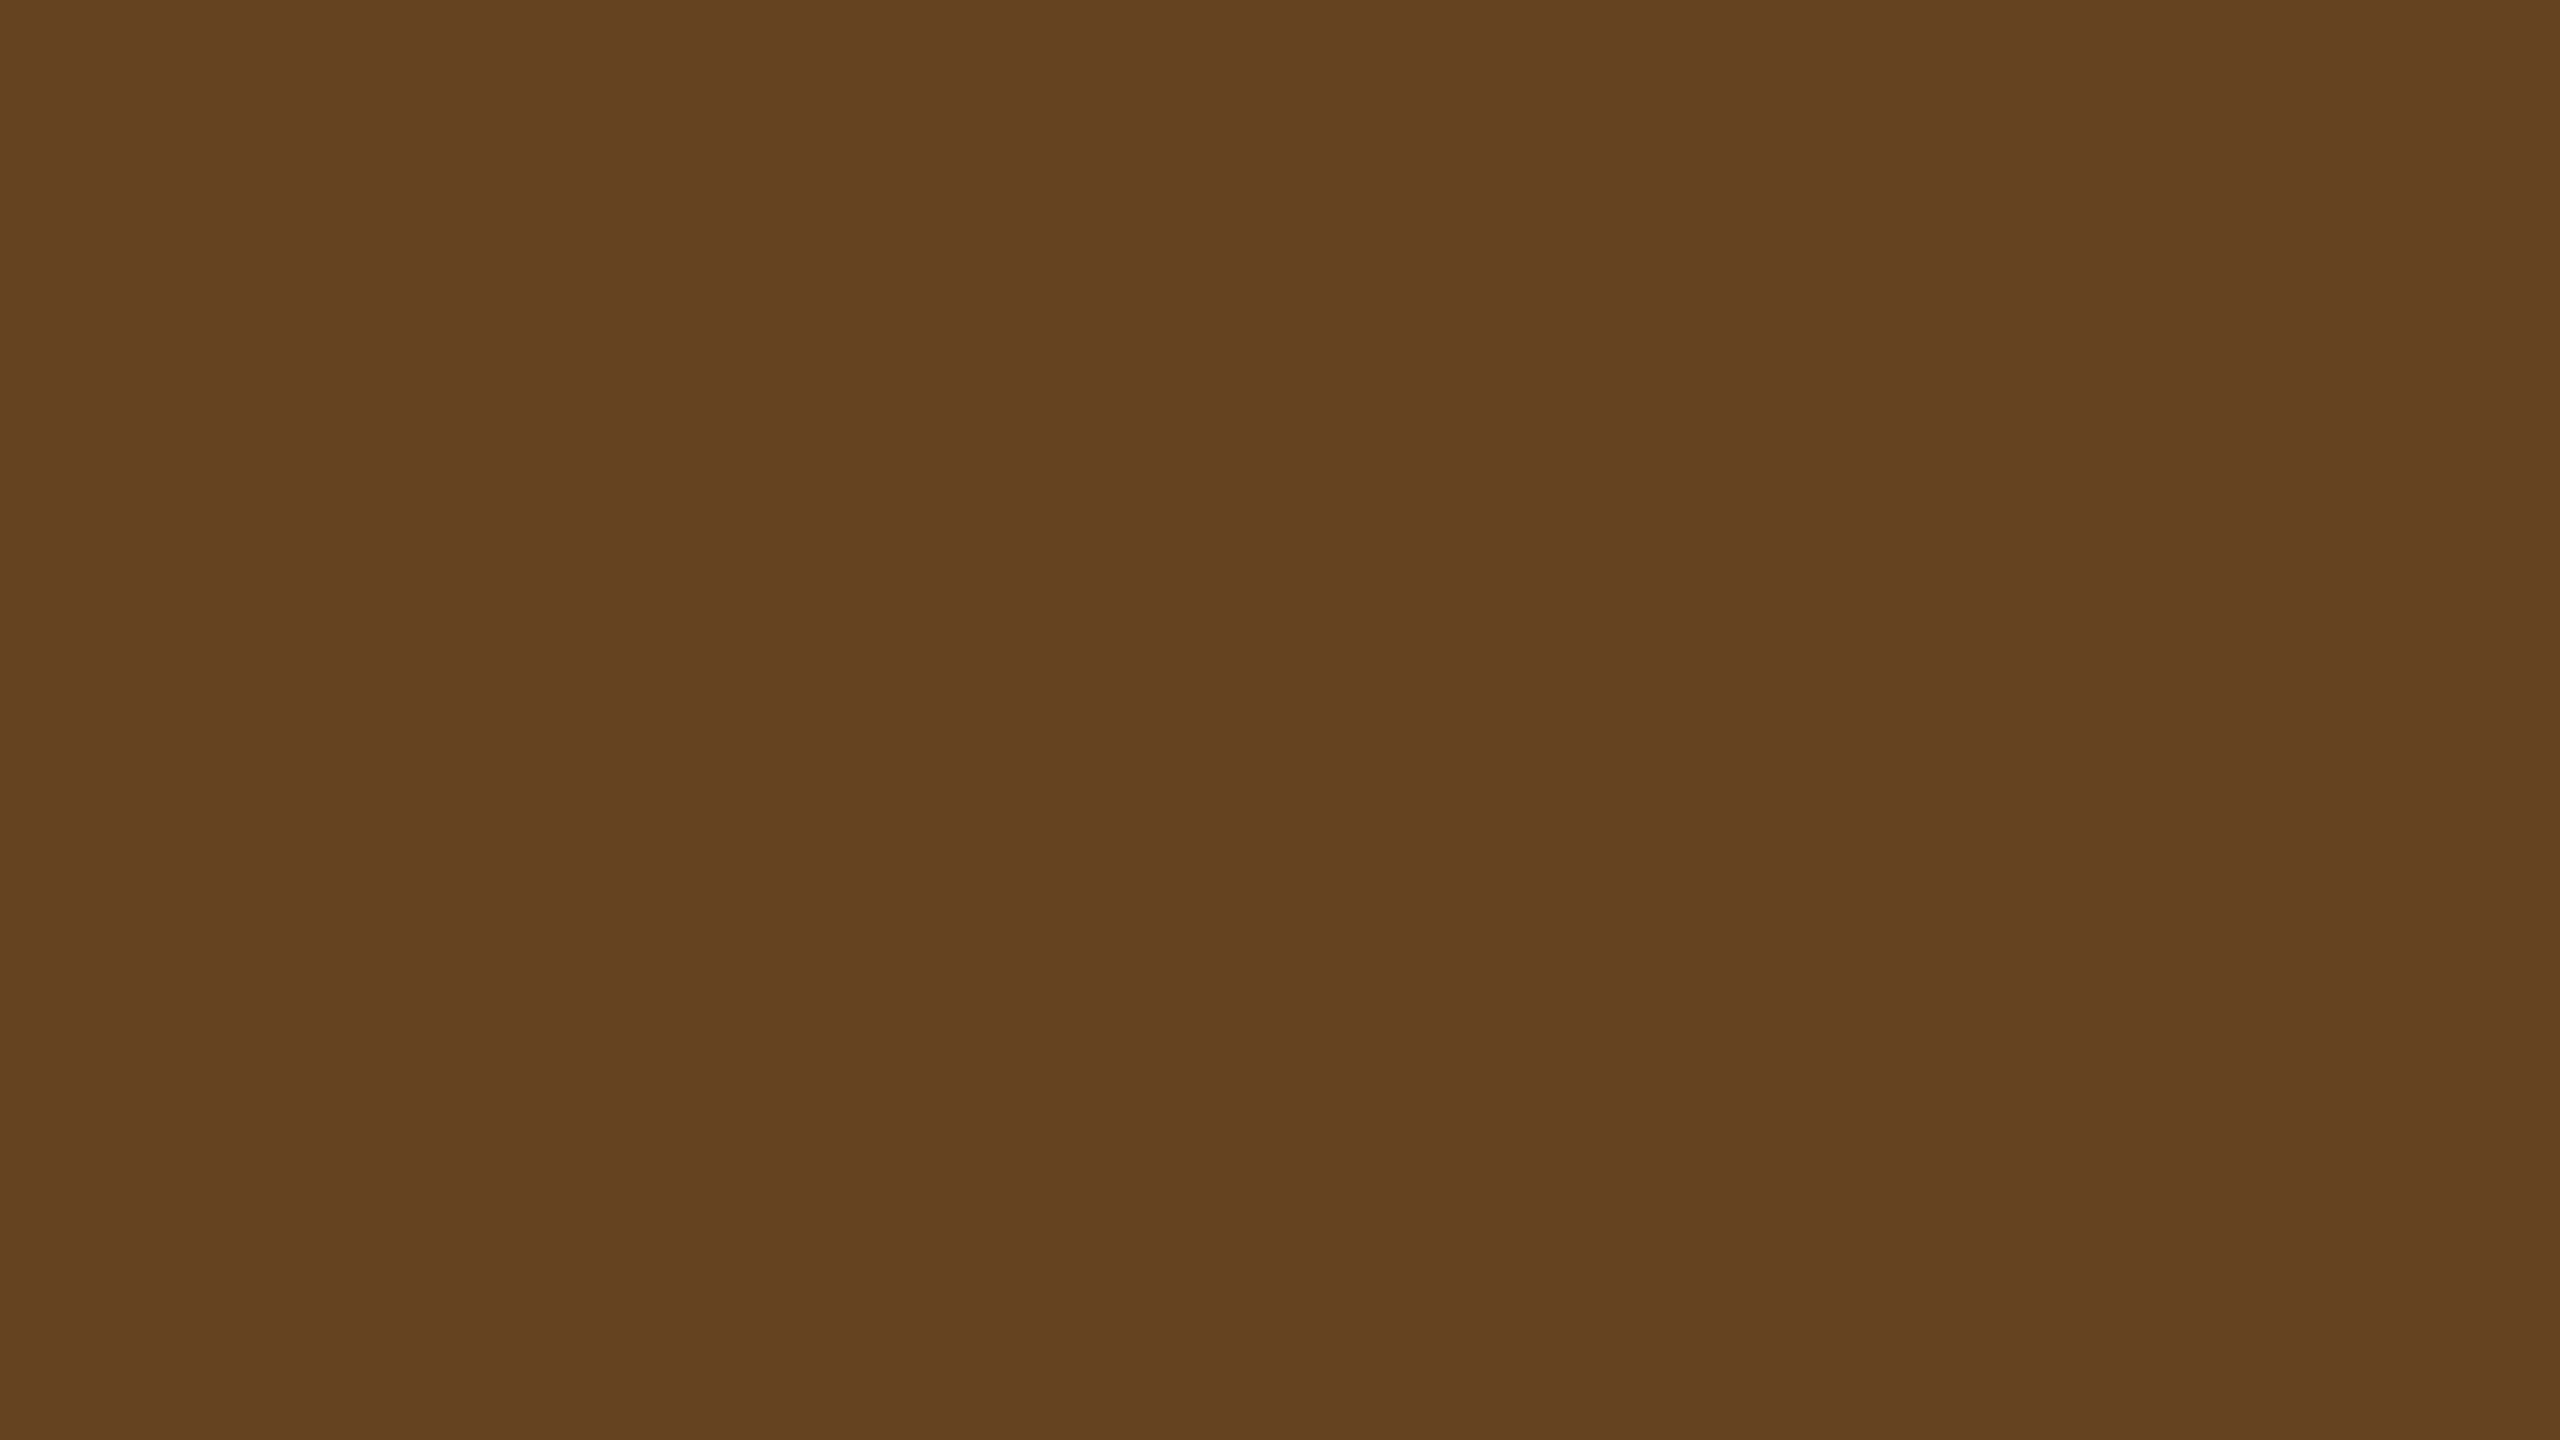 2560x1440 Otter Brown Solid Color Background